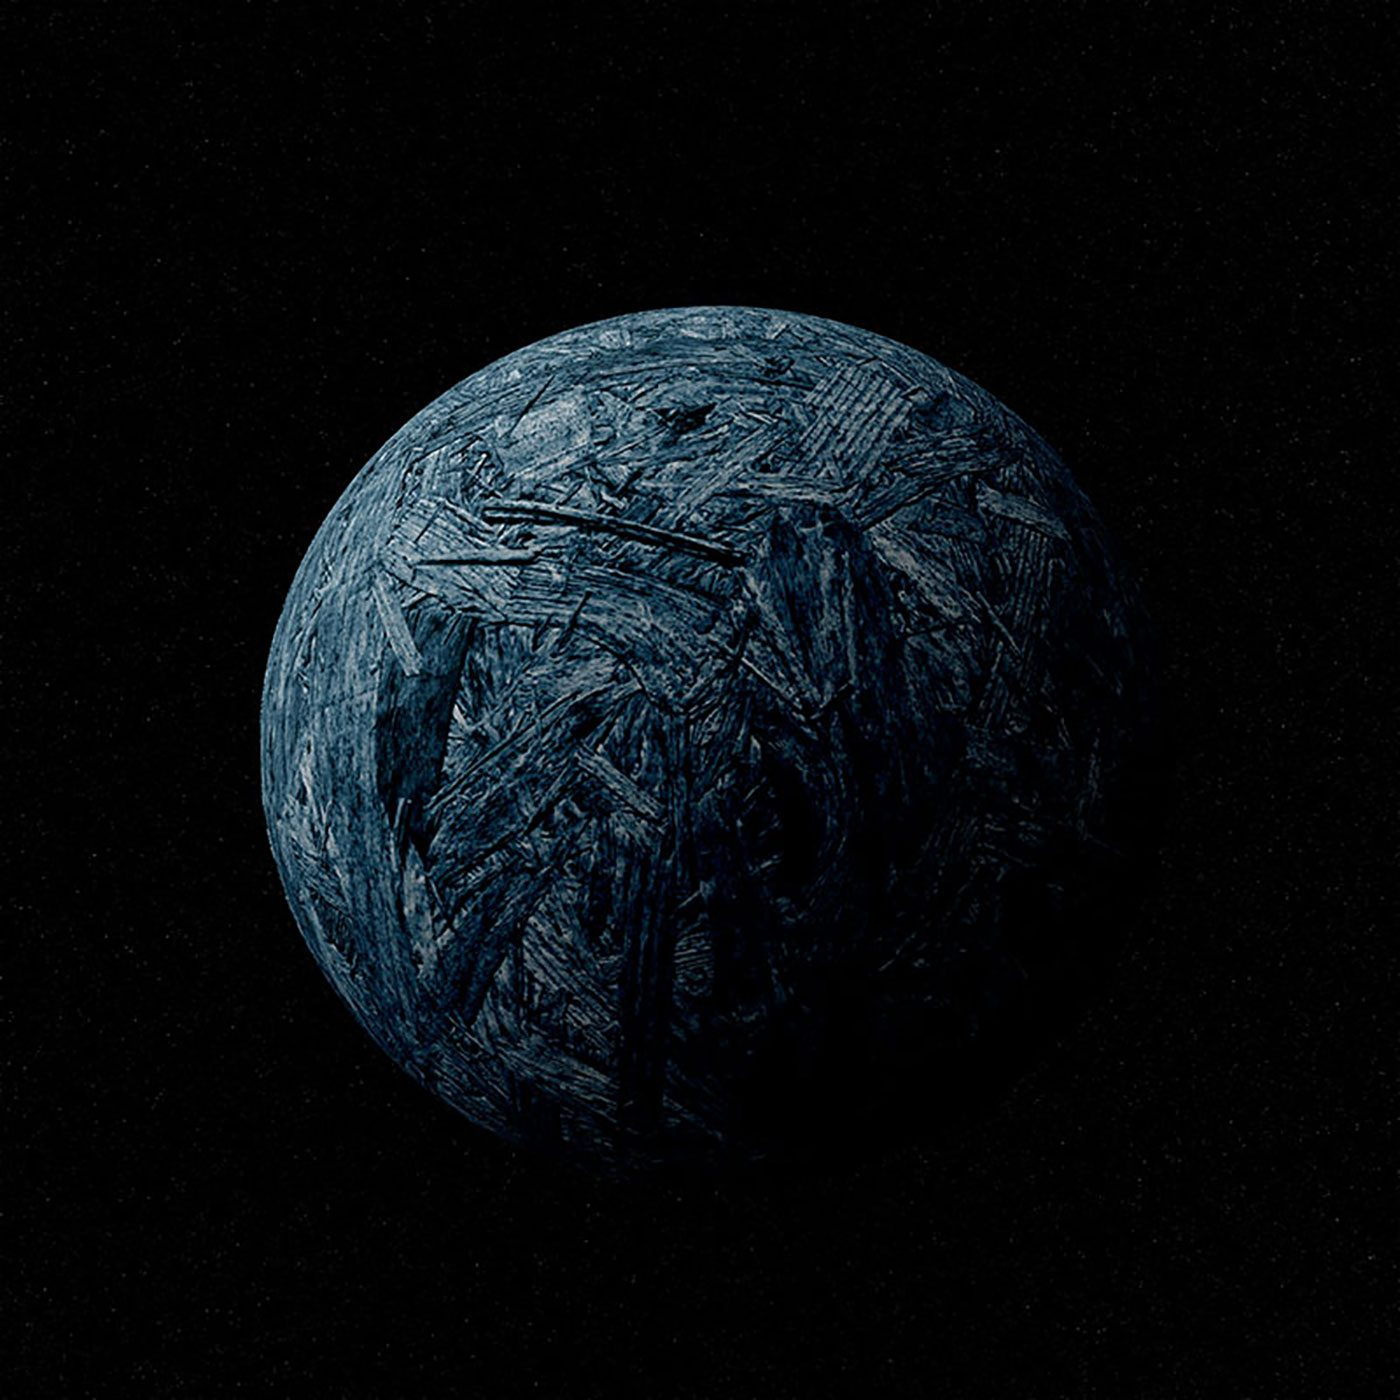 Nanoformed planet